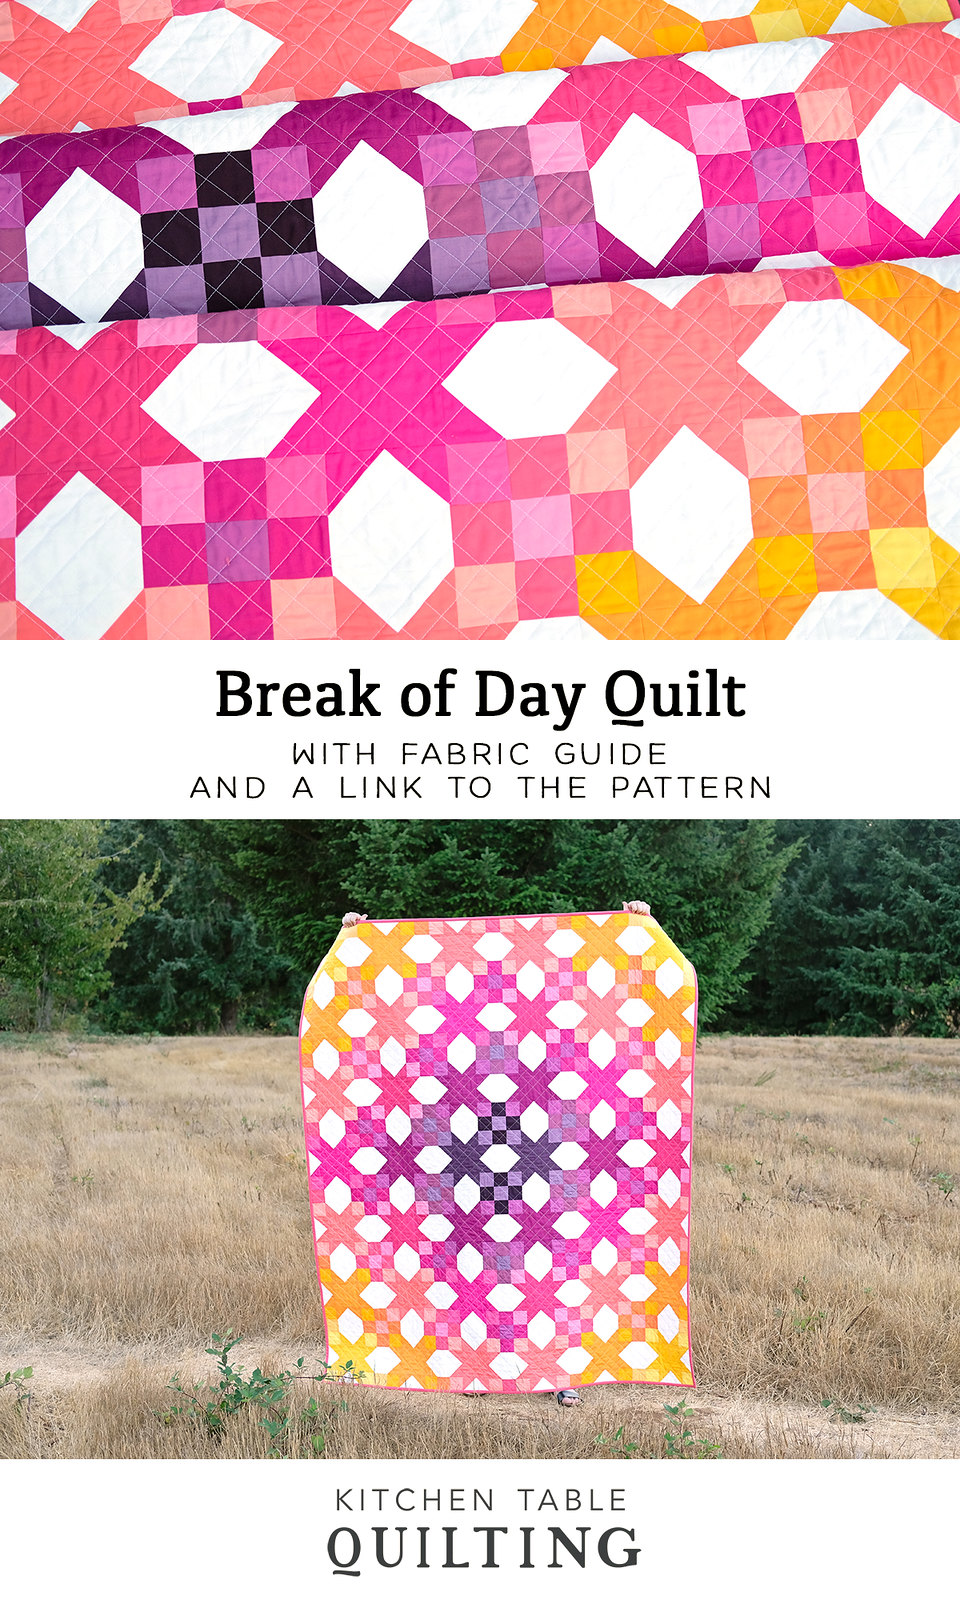 Break of Day Quilt - Kitchen Table Quilting